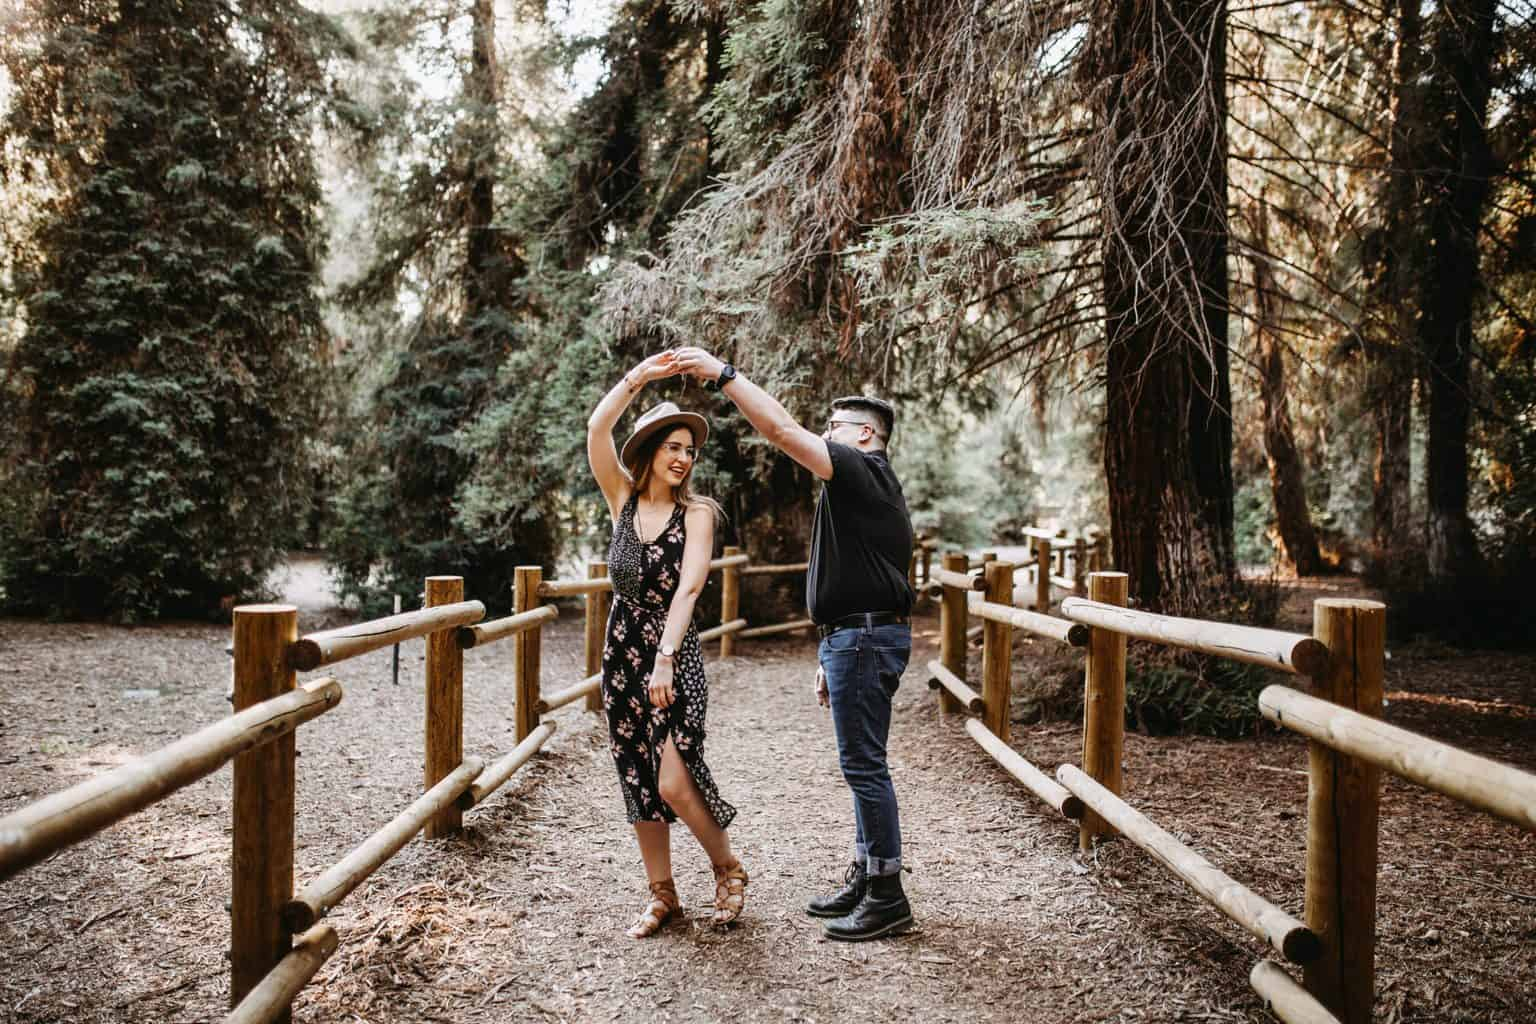 A Man and A Woman Dancing In The Middle Of The Forest